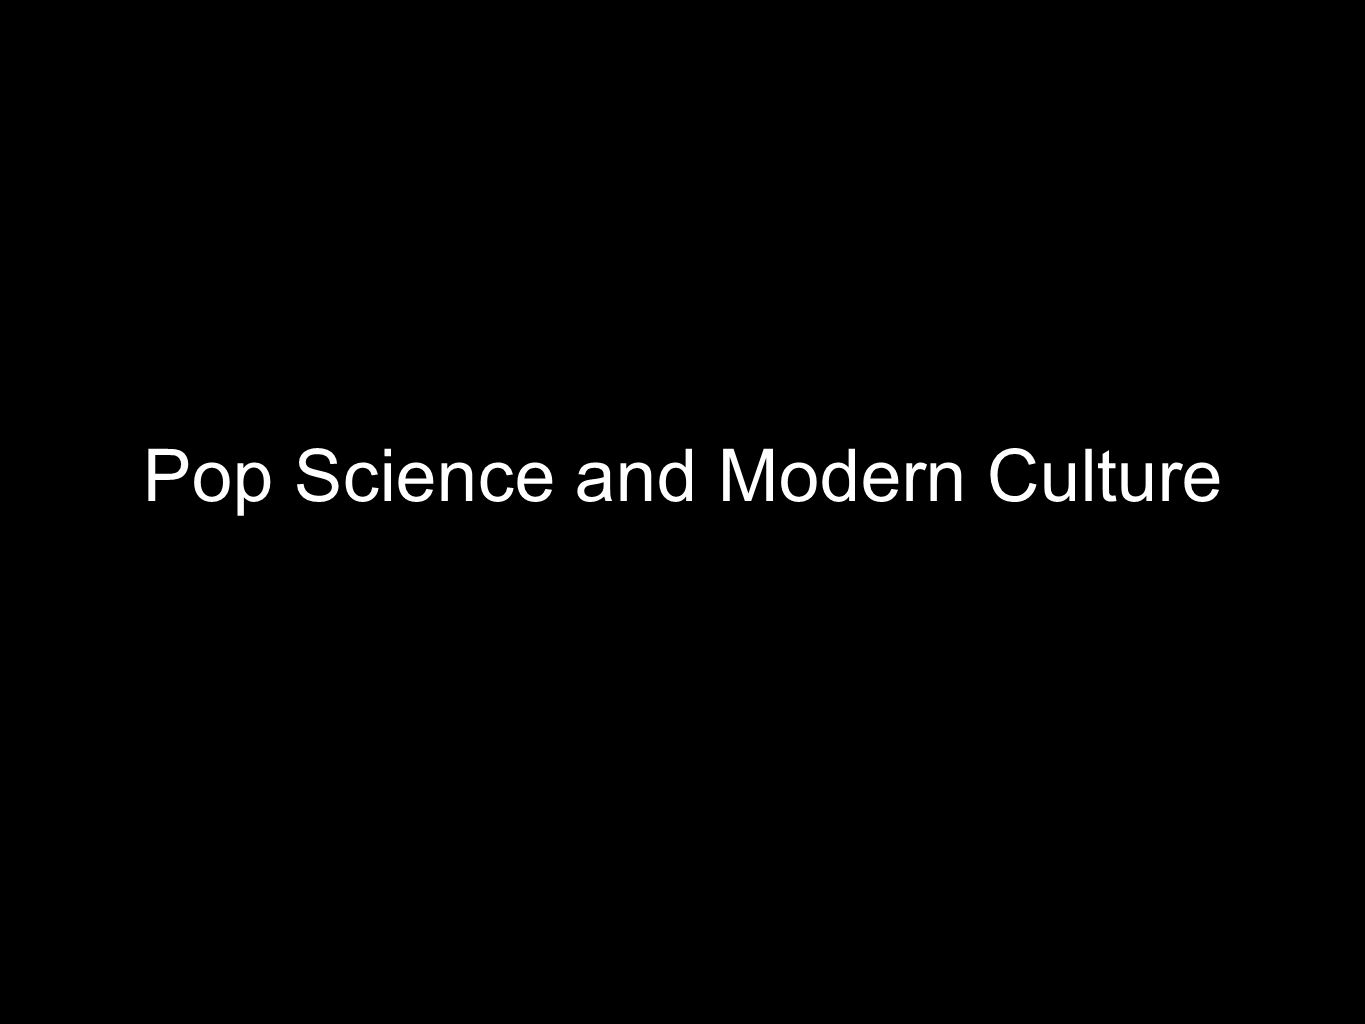 Pop Science and Modern Culture